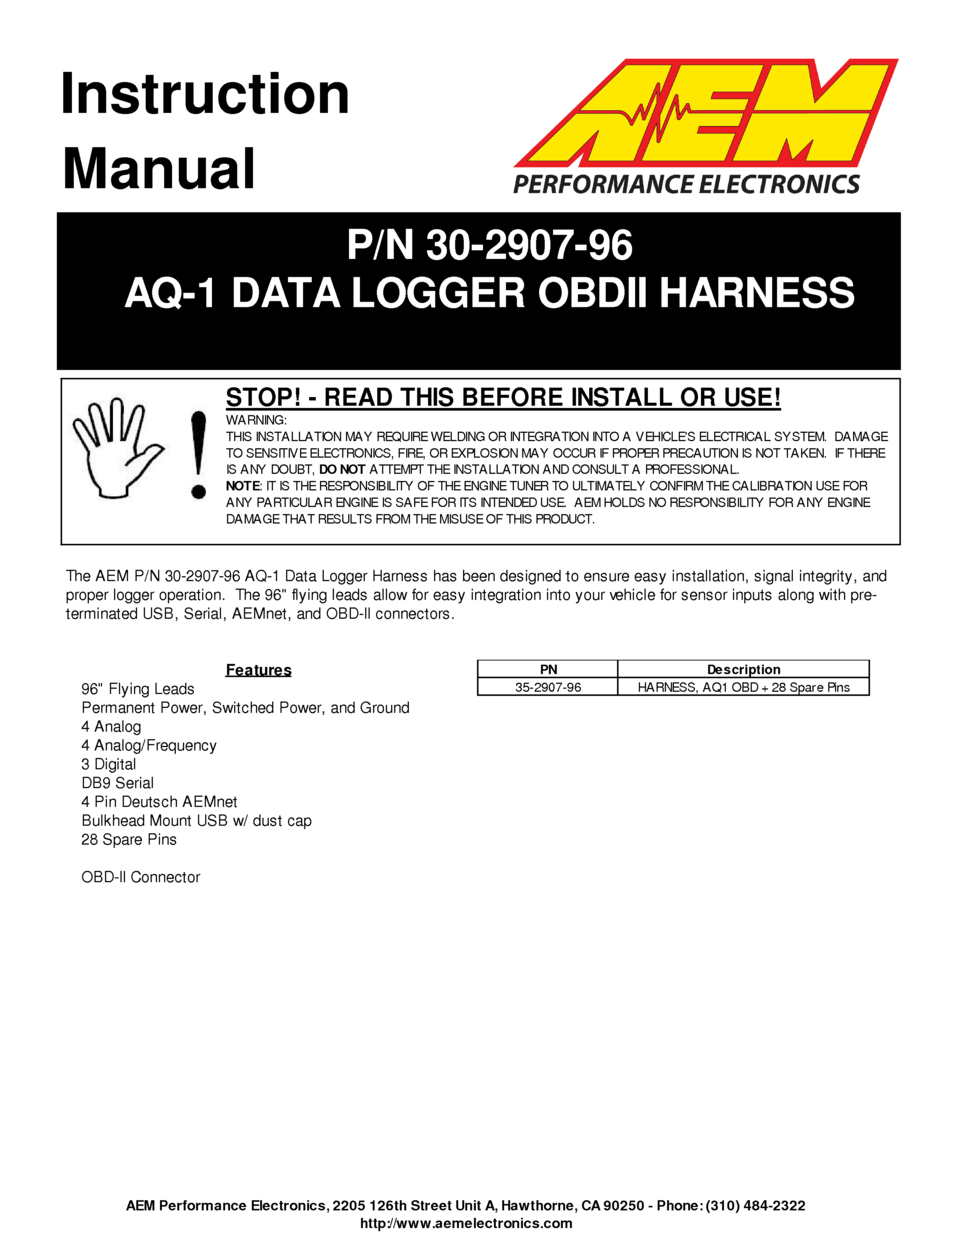 Aem Aq1 Obdii 96 Flying Lead Wiring Harness 30290796 User Guide Street Performance